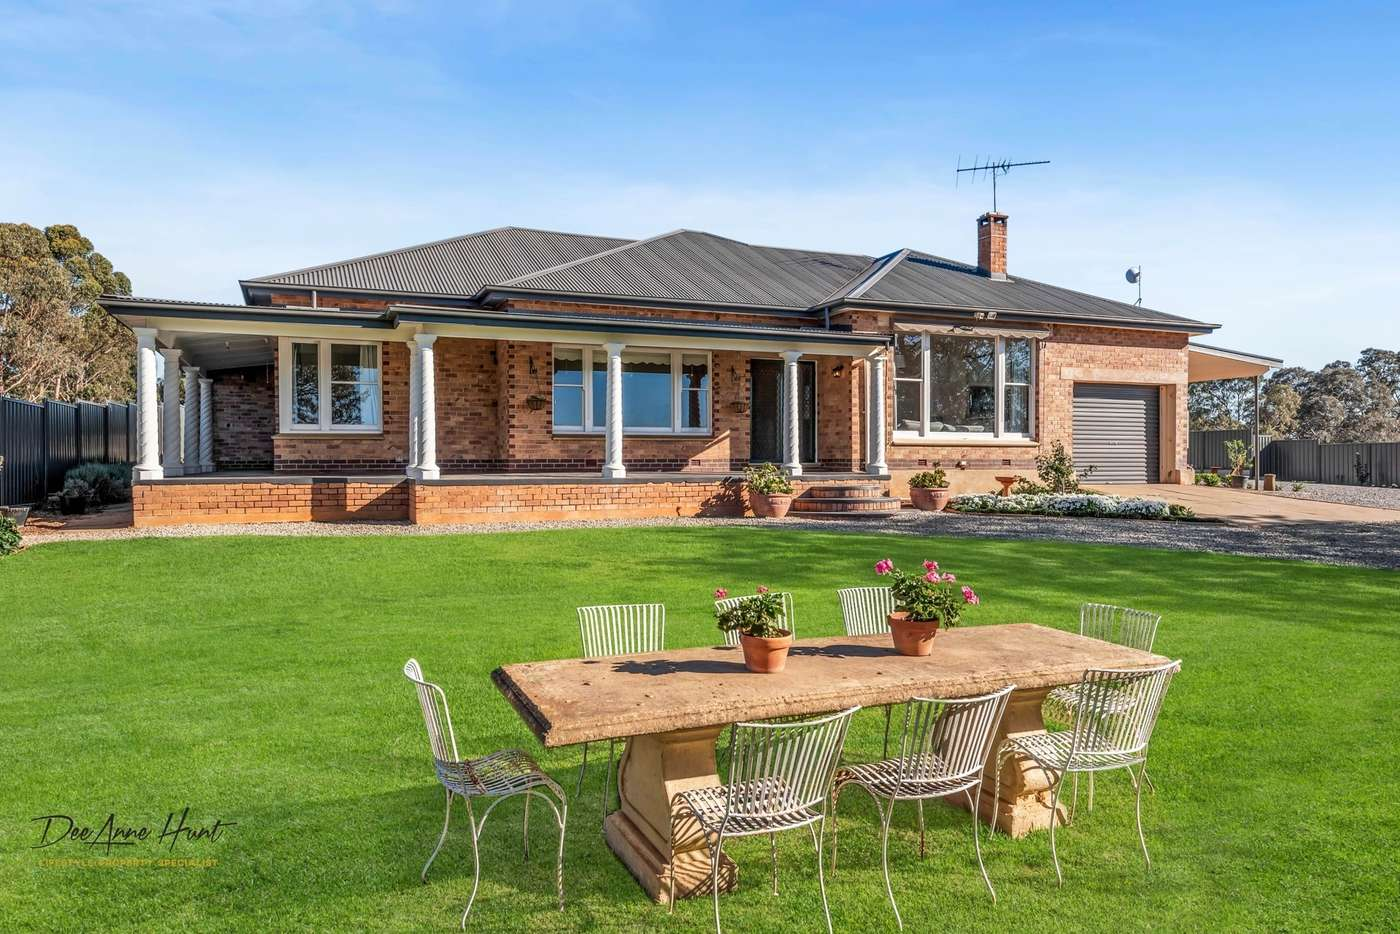 Main view of Homely house listing, 22 Sandalwood Court, Mount Barker SA 5251